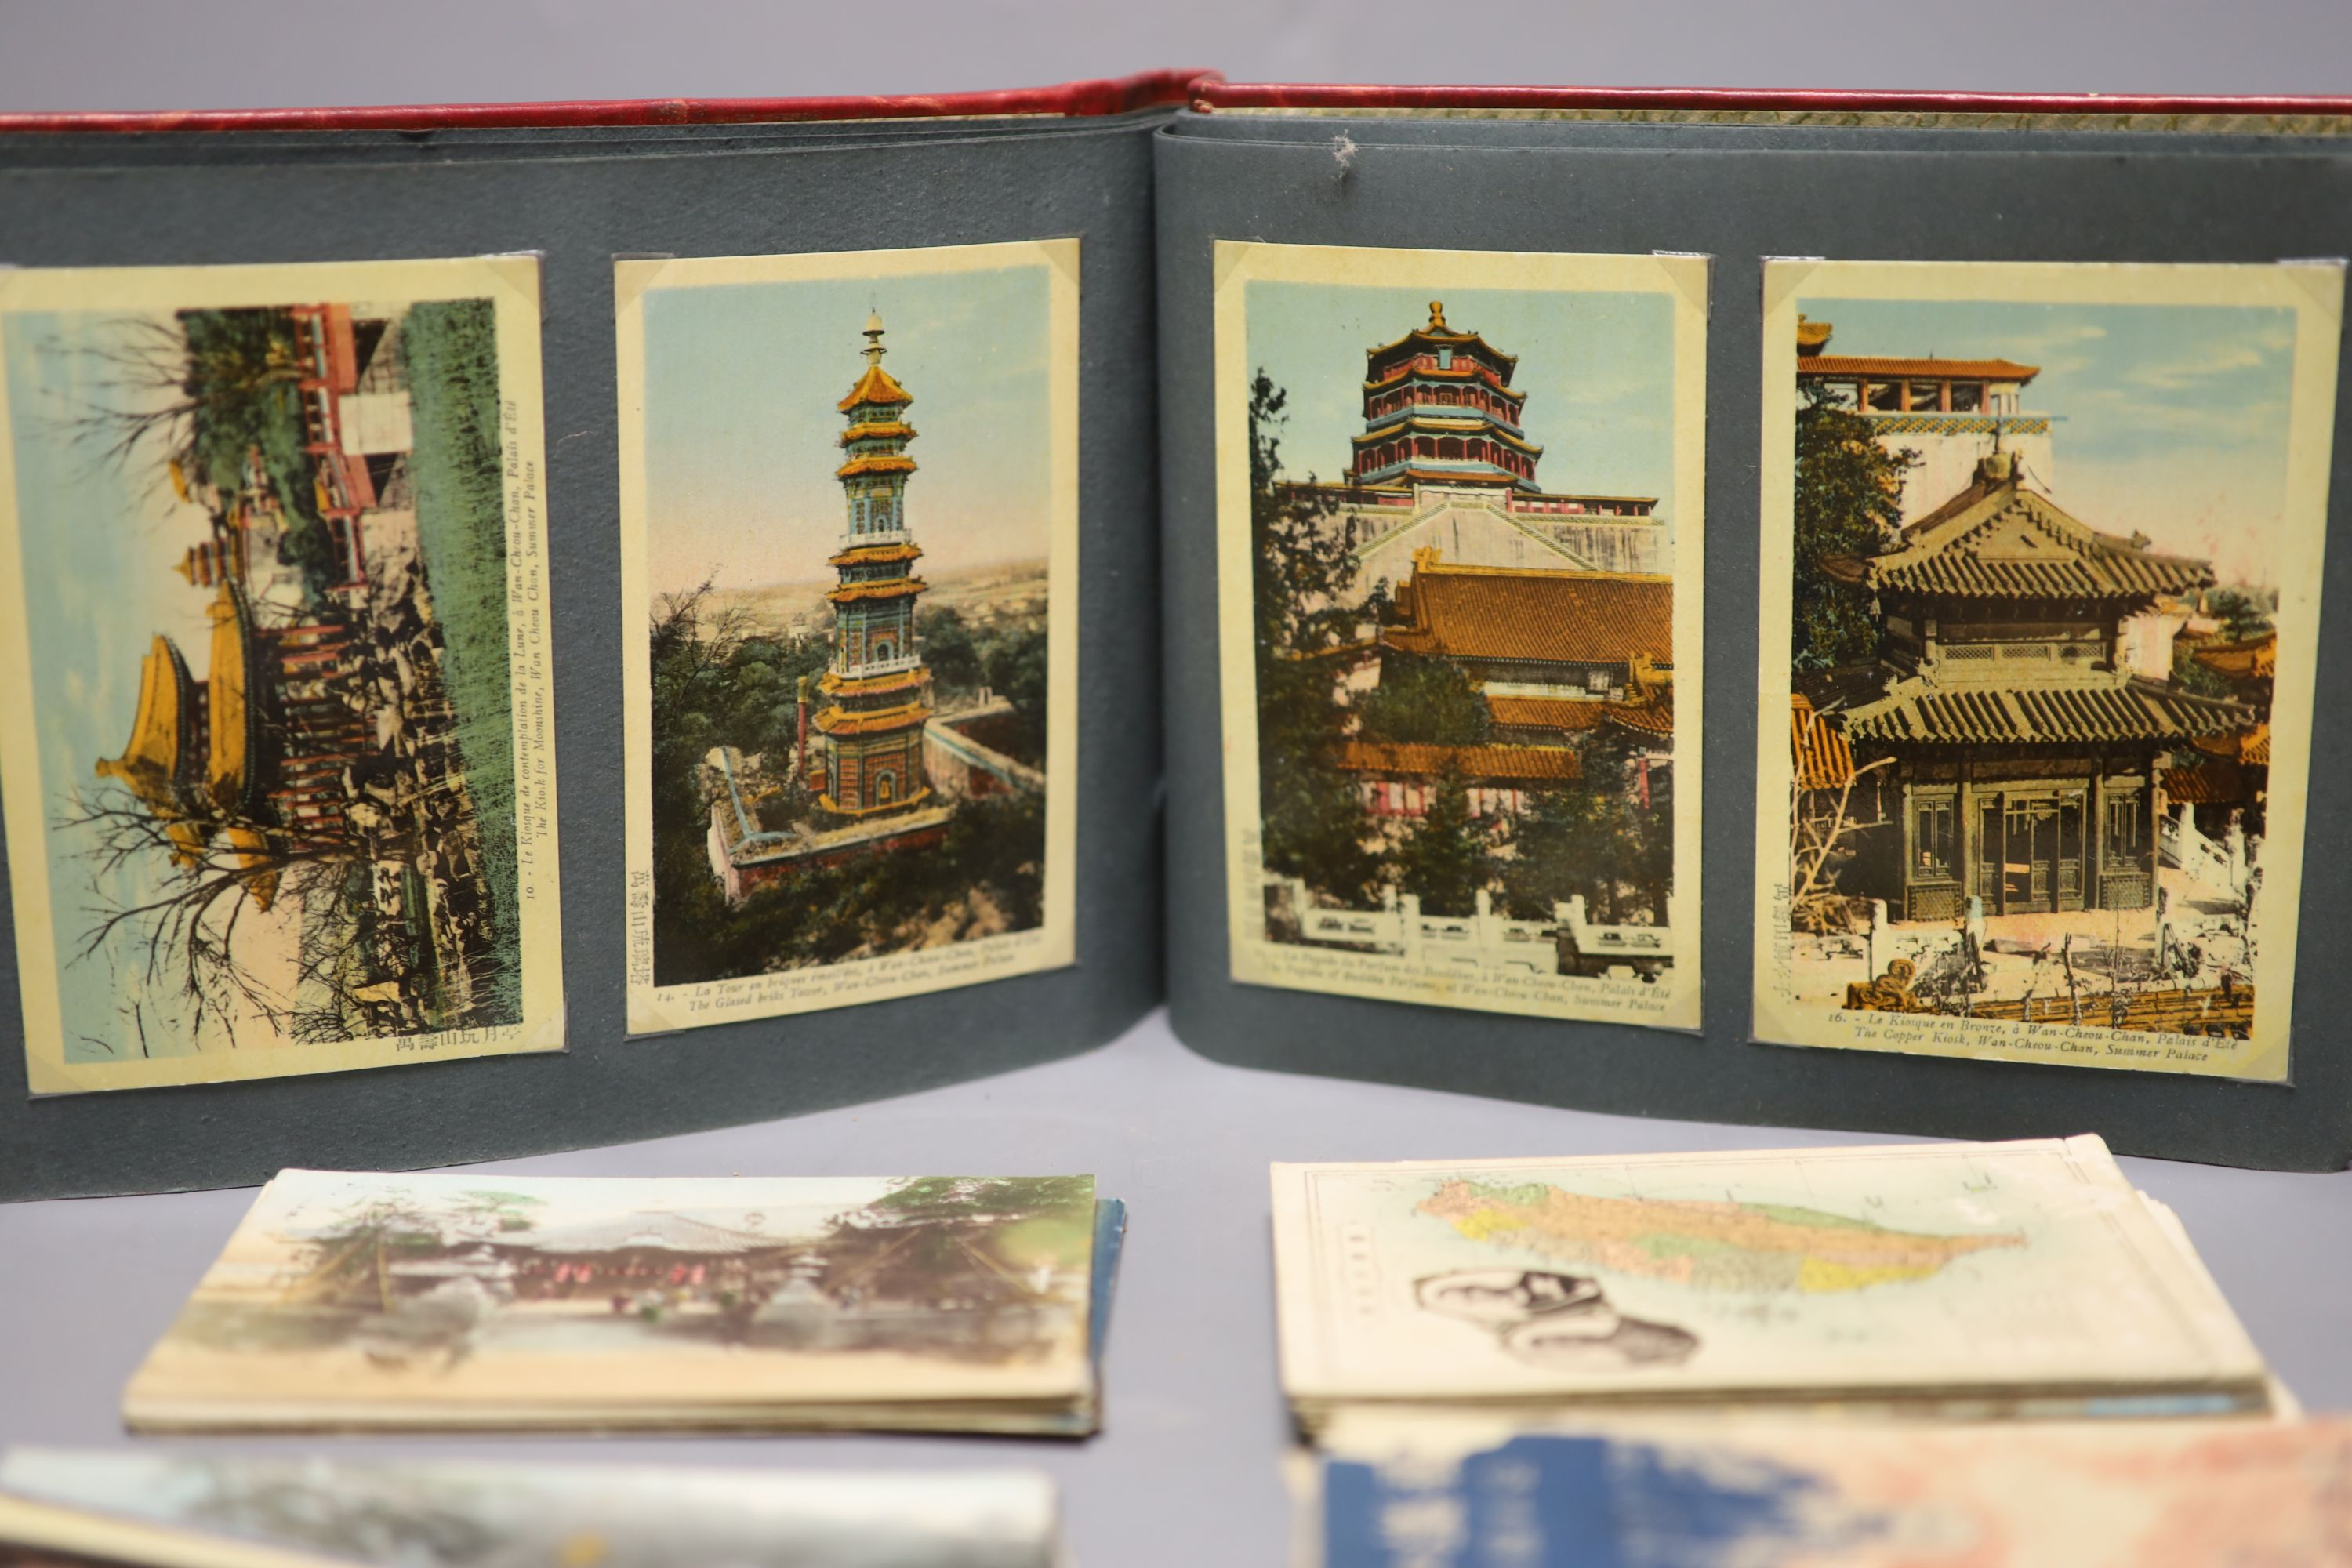 China, Japan and S.E Asia, early 20th century - an album of postcards, including views of the - Image 4 of 6